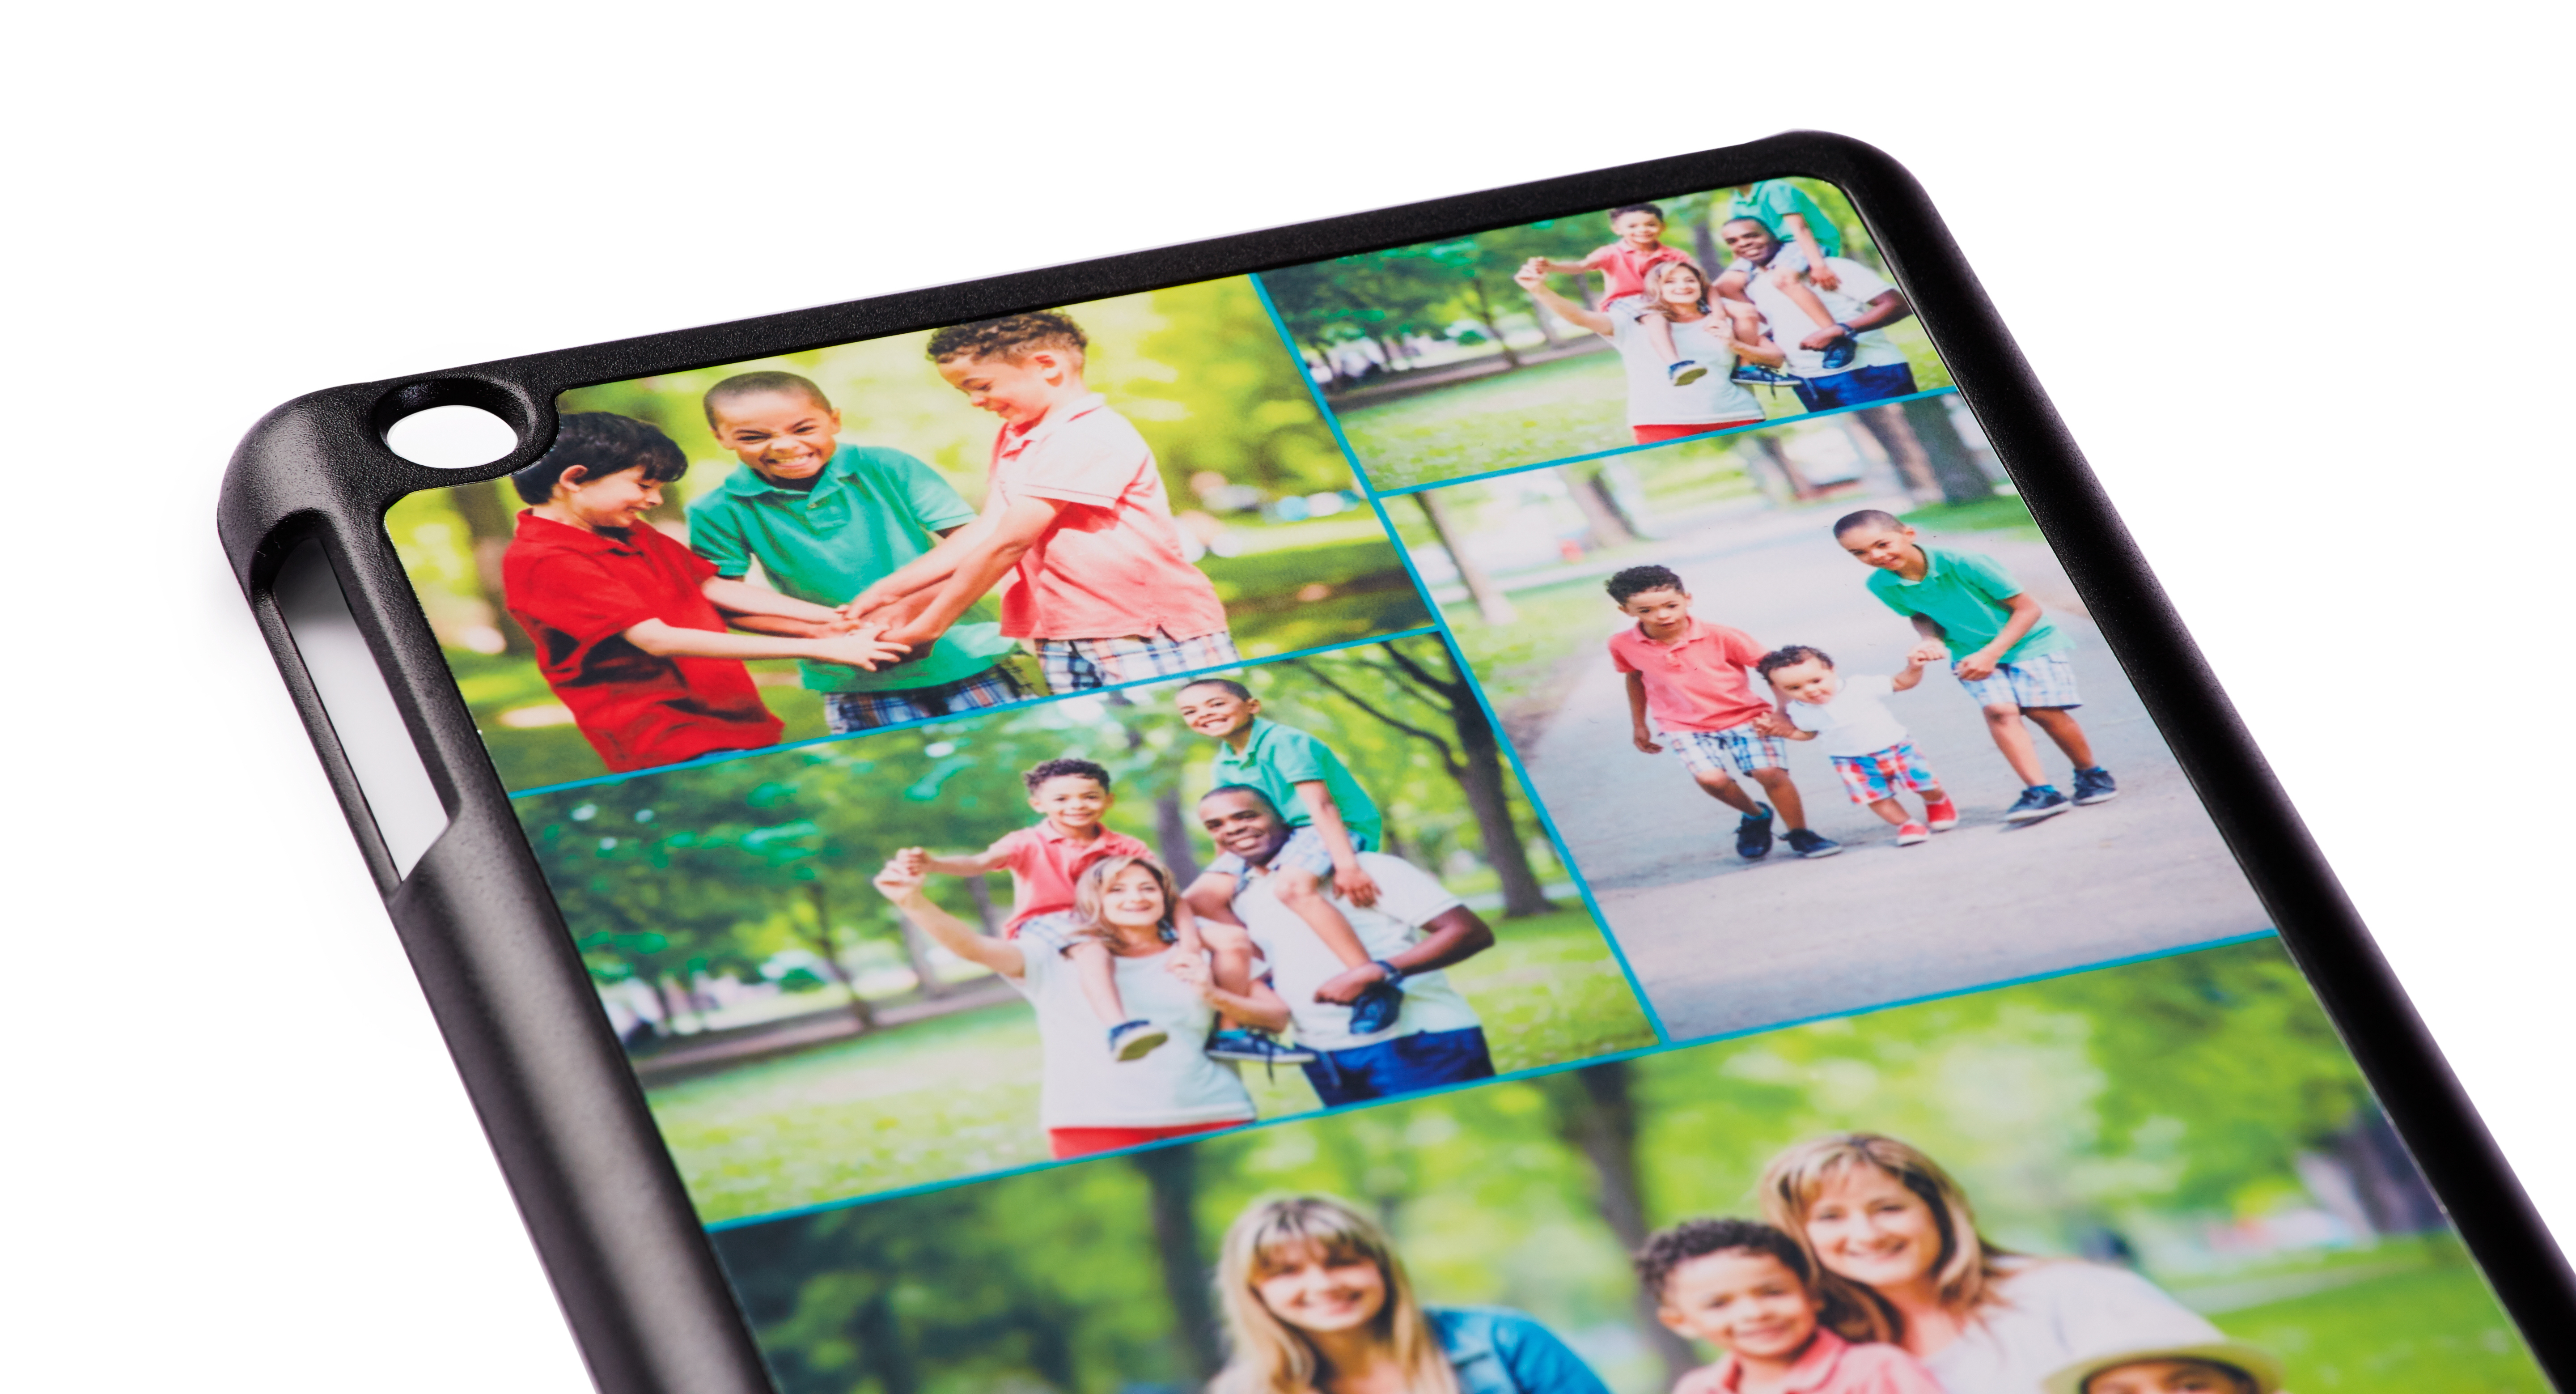 iPad case printed with colorful family photos